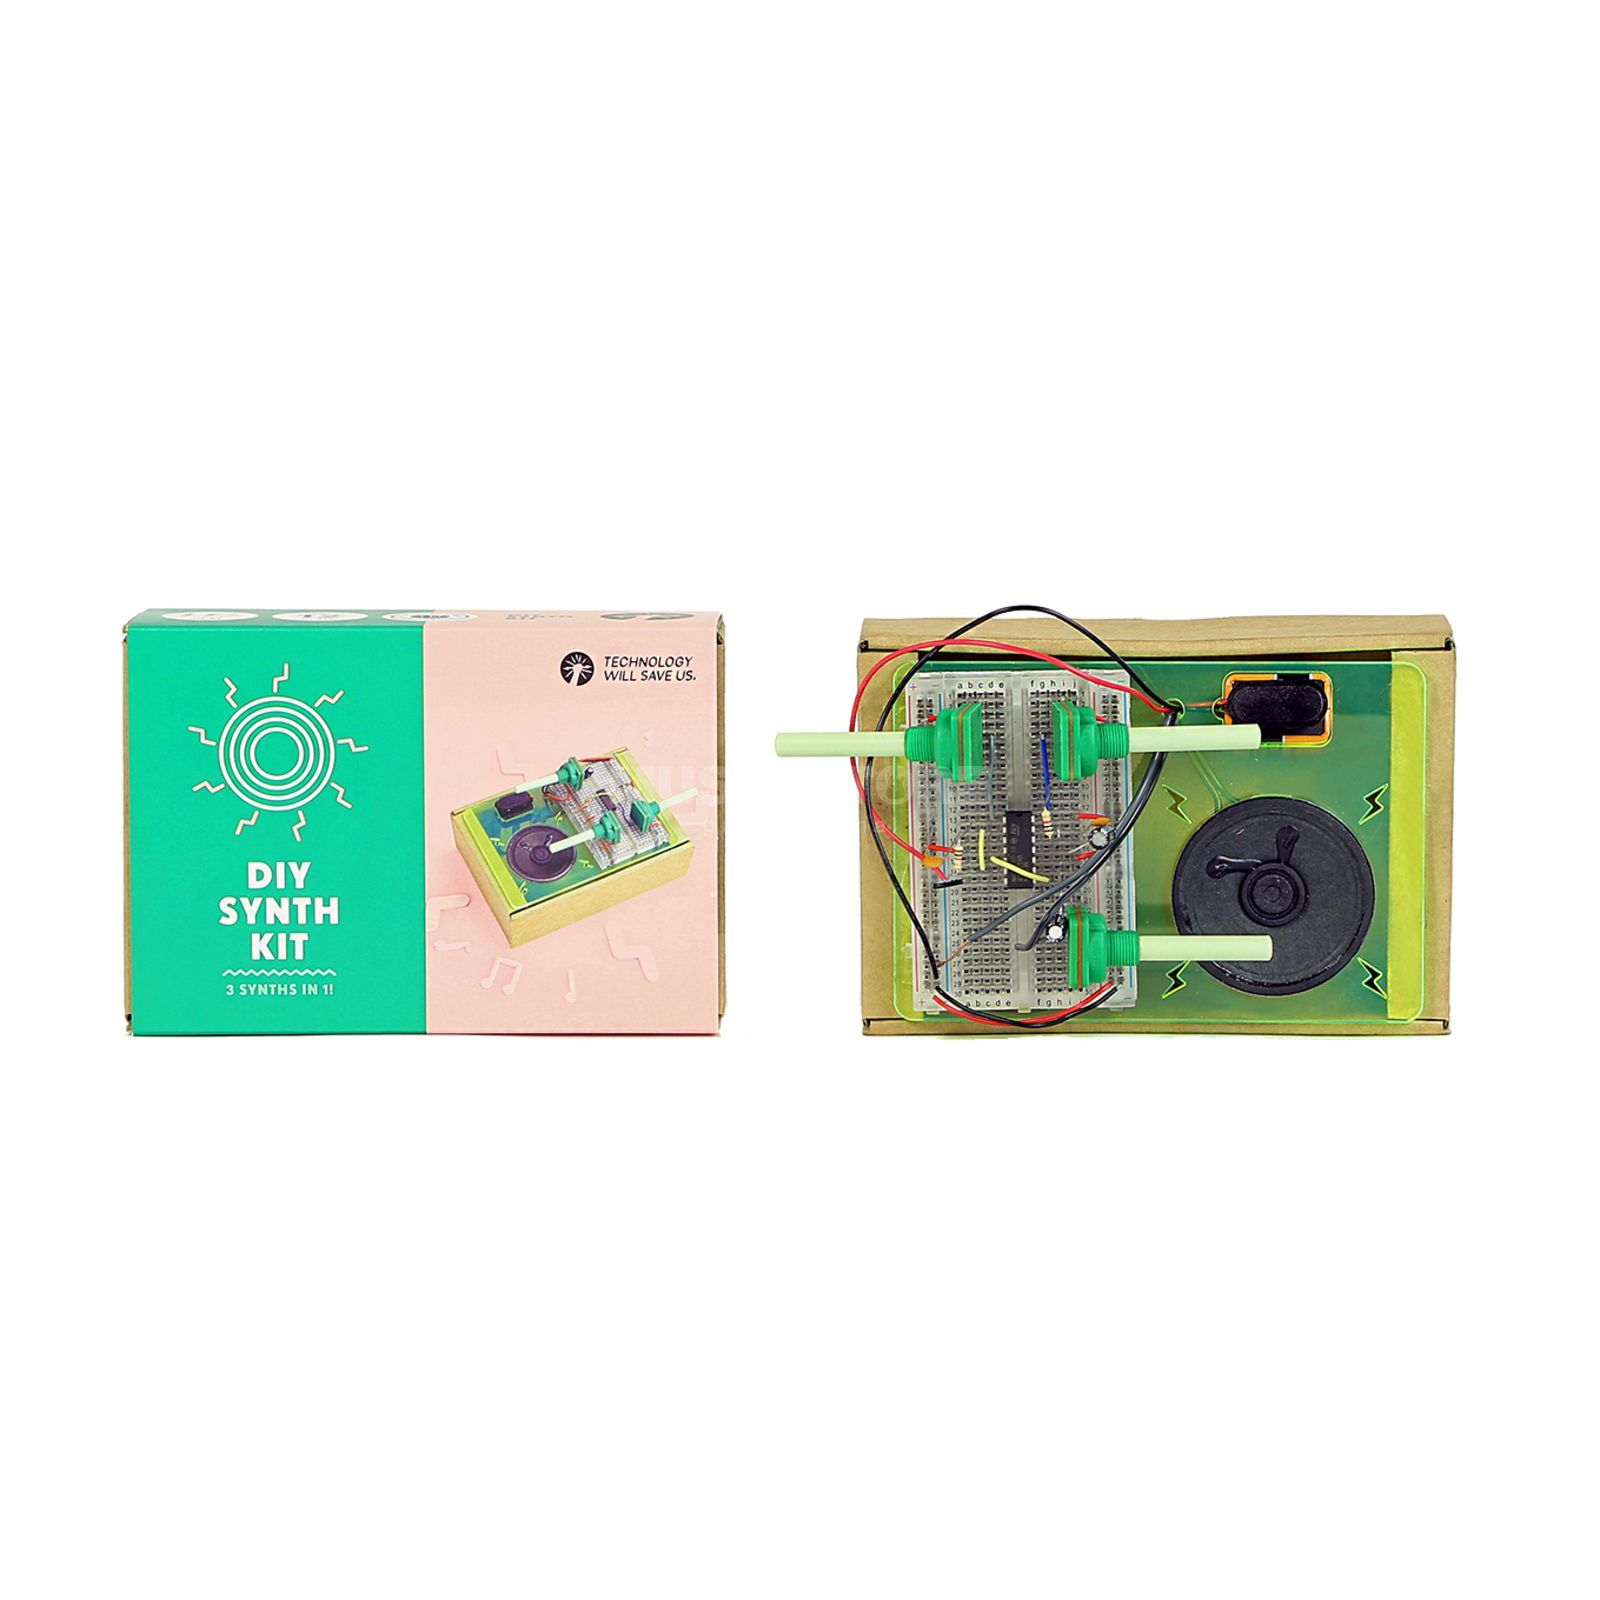 Technology Will Save Us DIY Synth Kit Imagen del producto